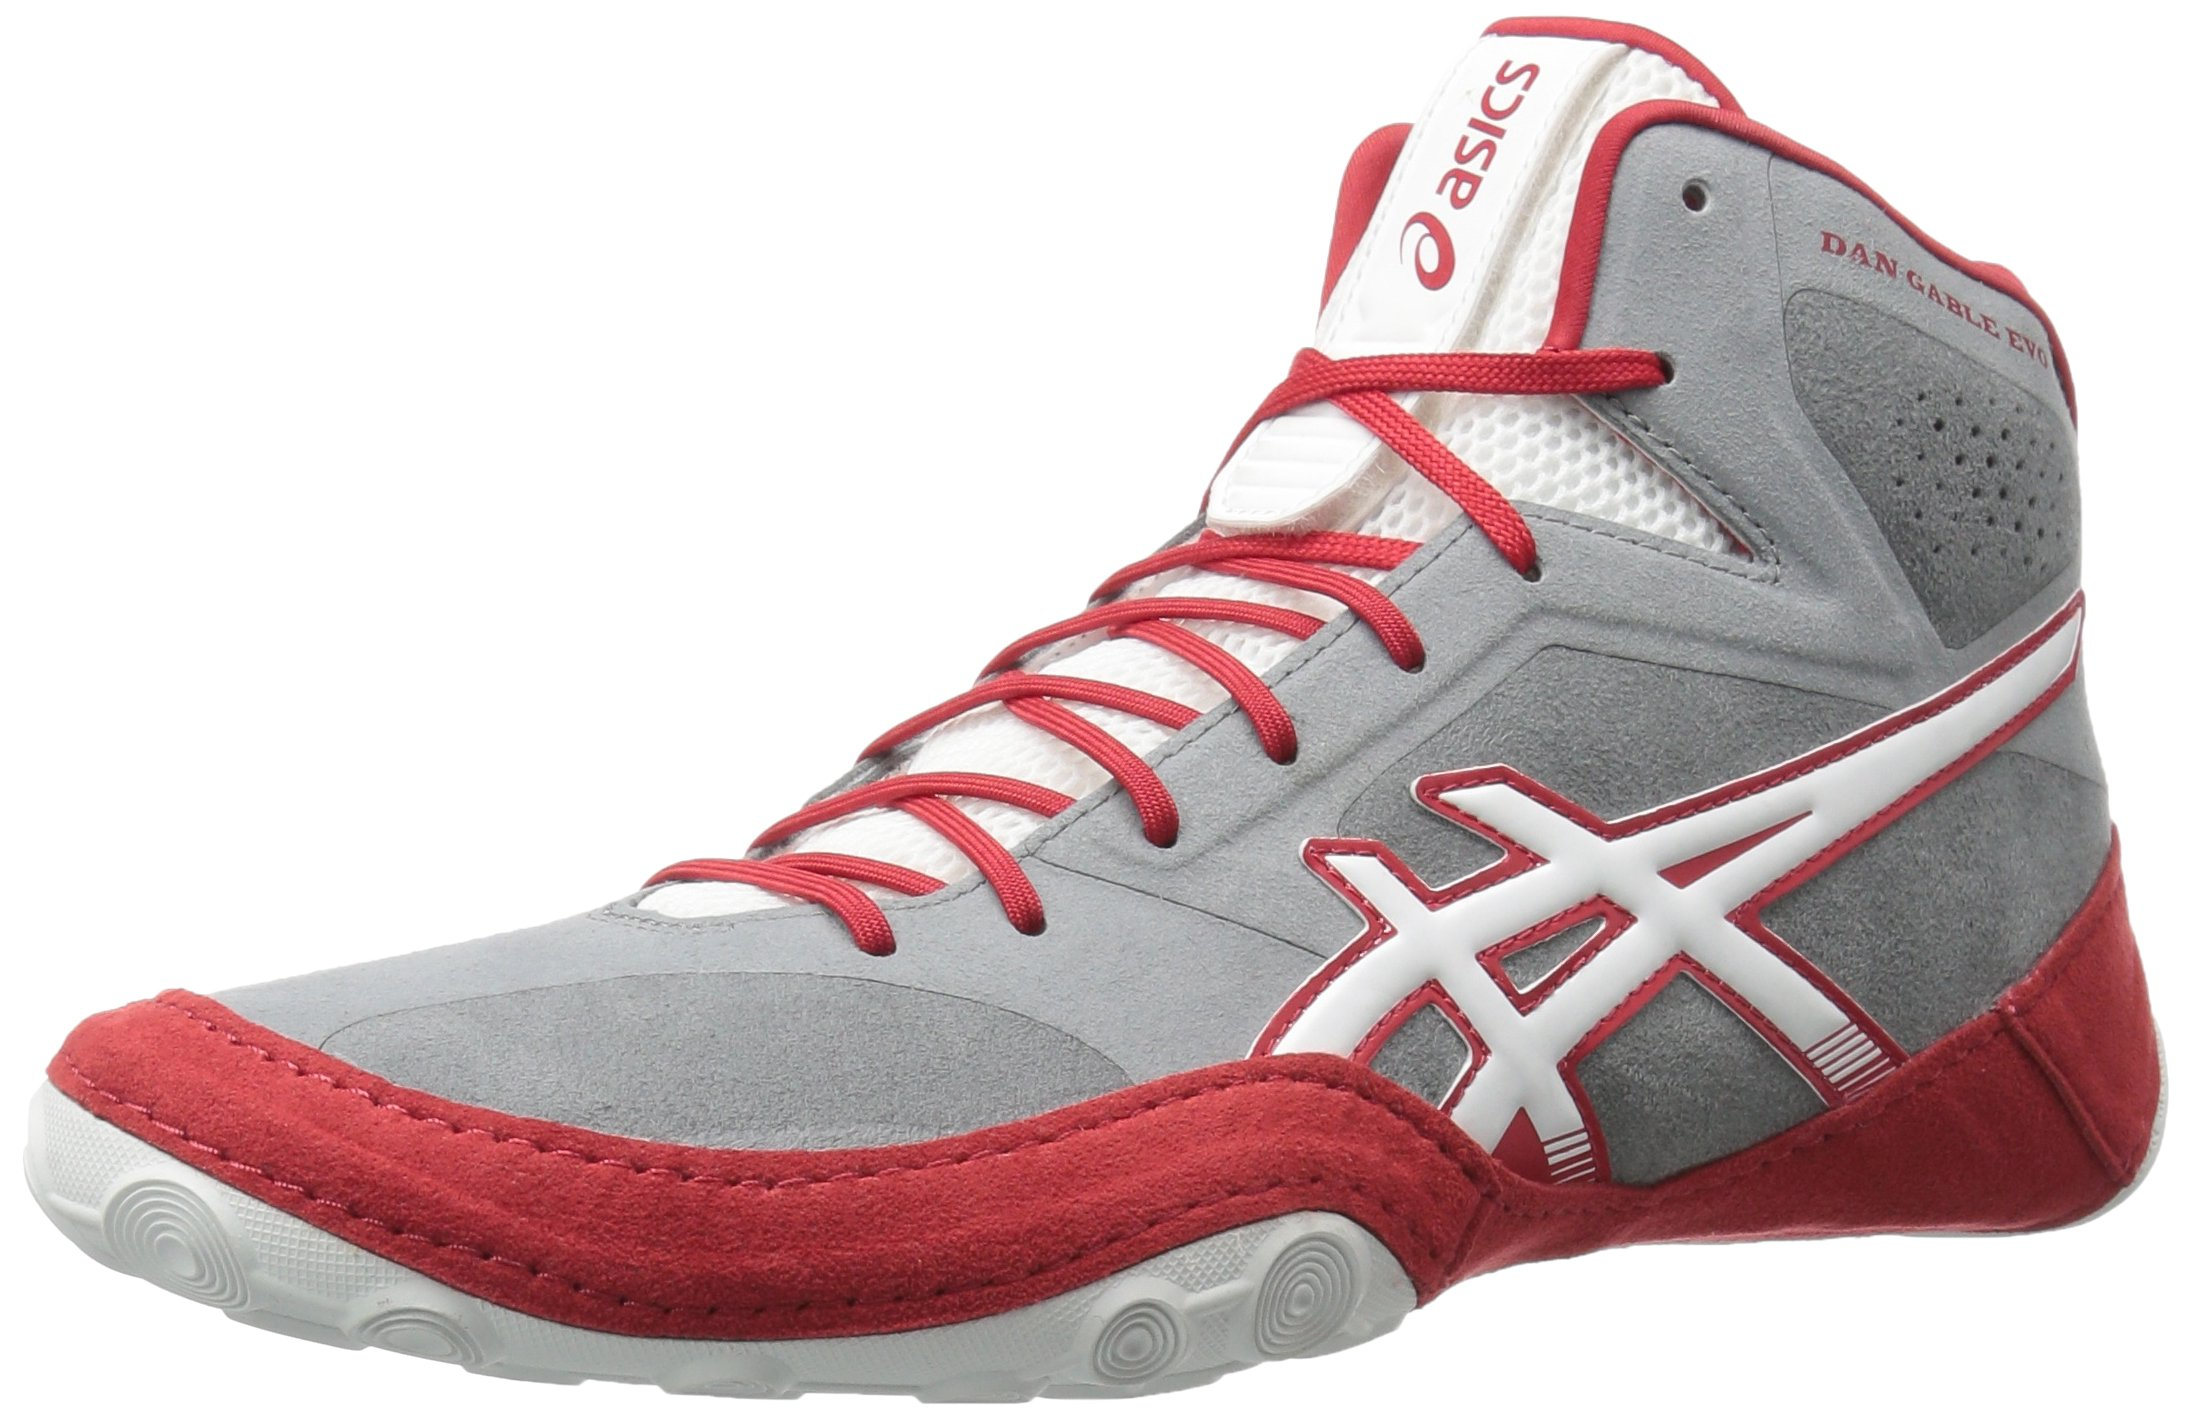 ASICS Men's Dan Gable Evo Wrestling-Shoes, Aluminum/White/Classic Red, 15 Medium US